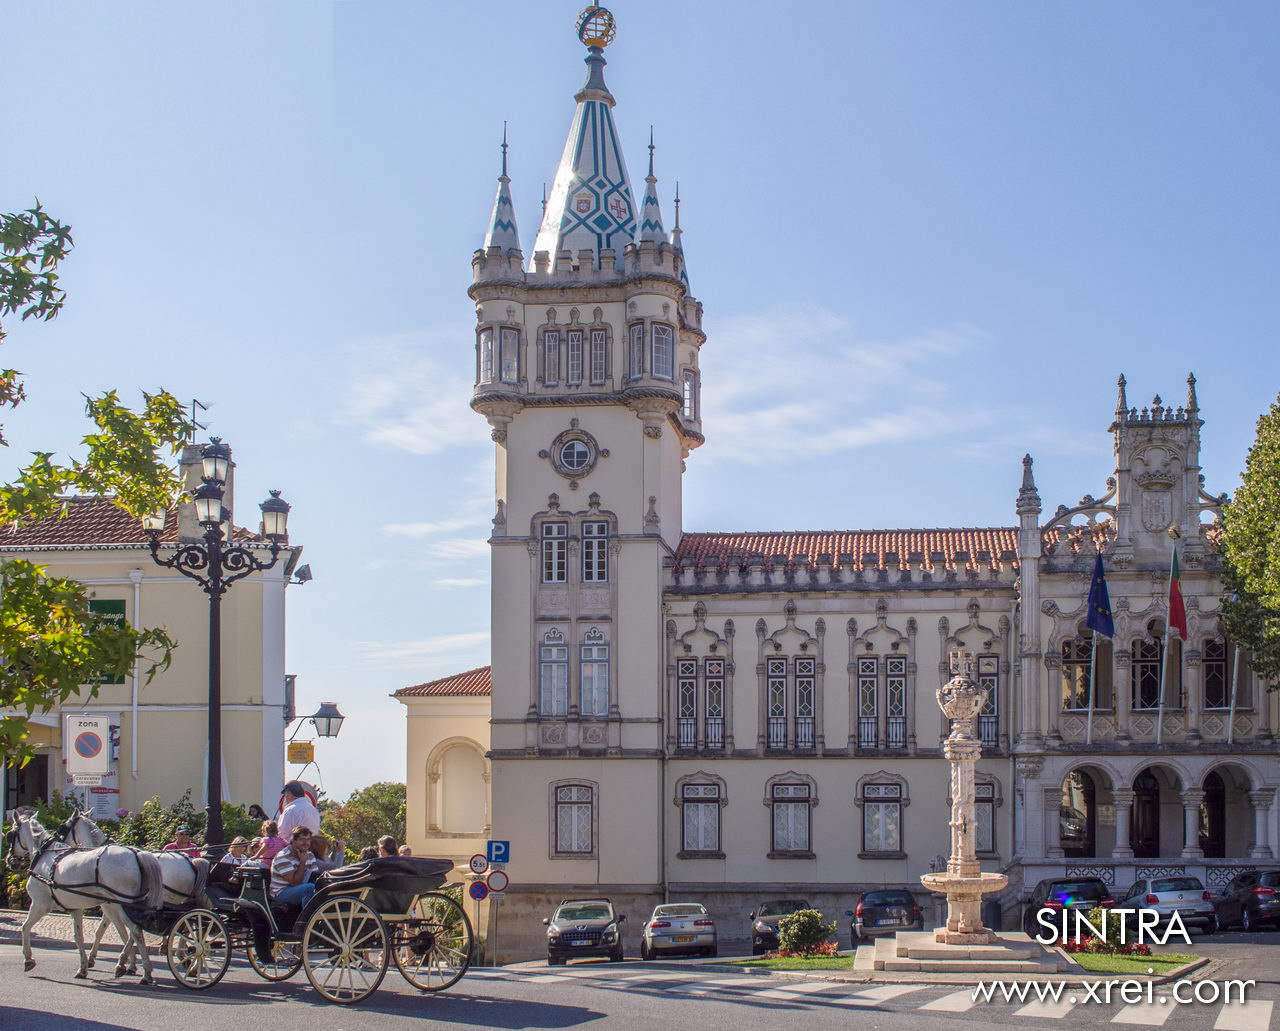 The building of the Paços do Concelho de SIntra was built between 1906 and 1909, with imposing facades with neo-Manueline windows. On the main elevation there is a tower with a pyramidal roof covered with tiles, representing the Cross of Christ and the National Shield, and an armillary sphere at the top. Inside there is a cloister with balconies decorated in neo-Manueline and Renaissance style